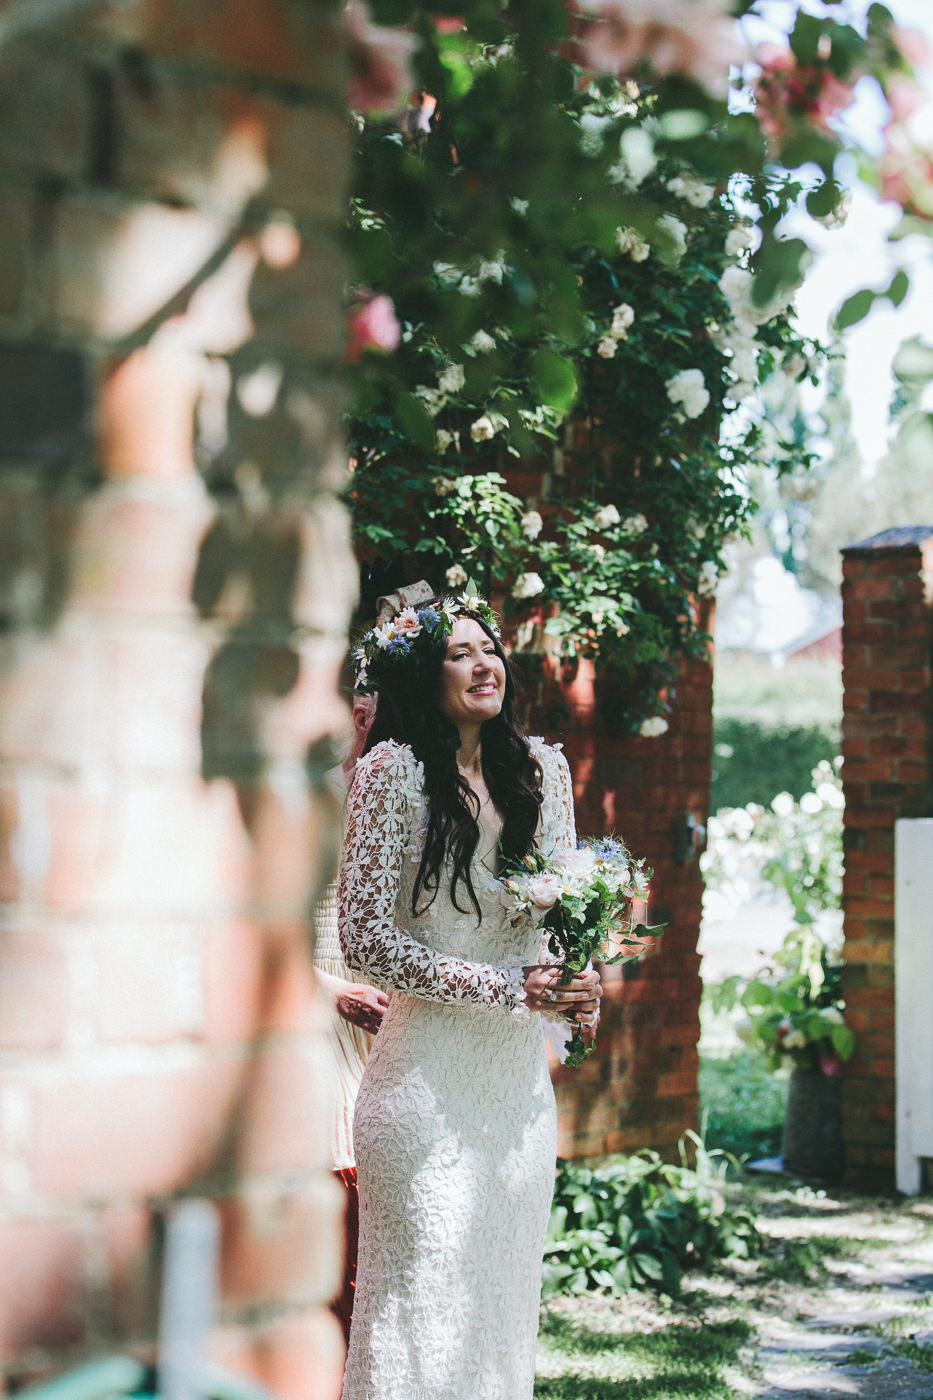 Excited bride!